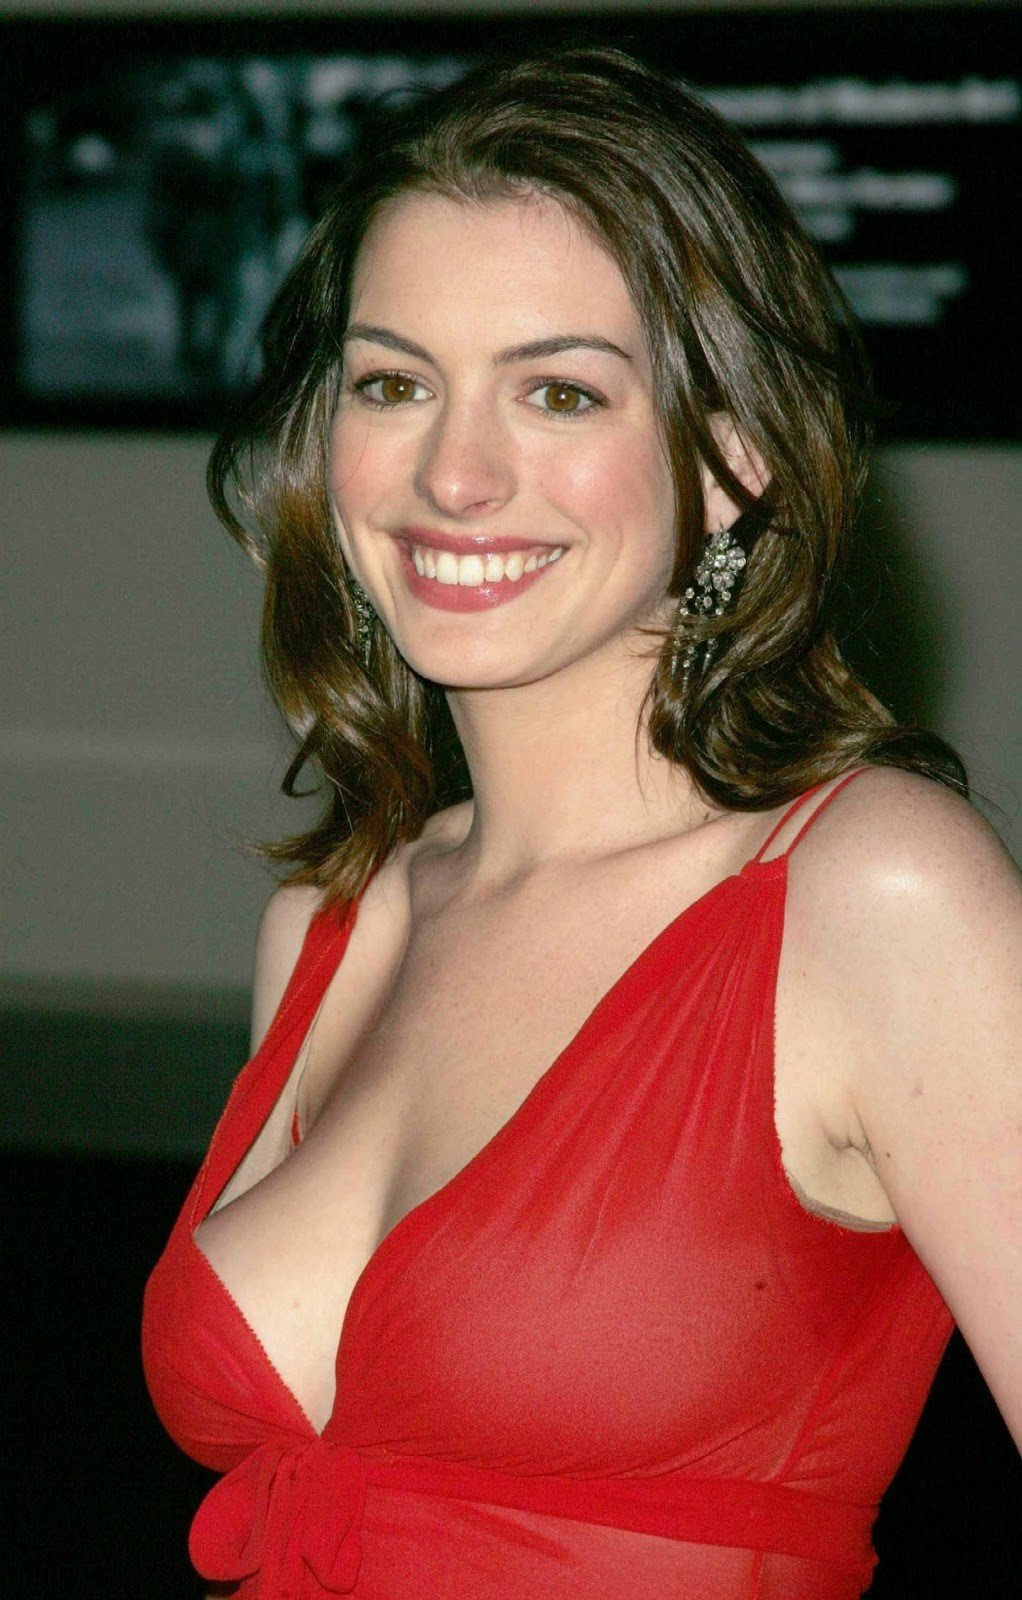 Anne Hathaway Red Dress Photos